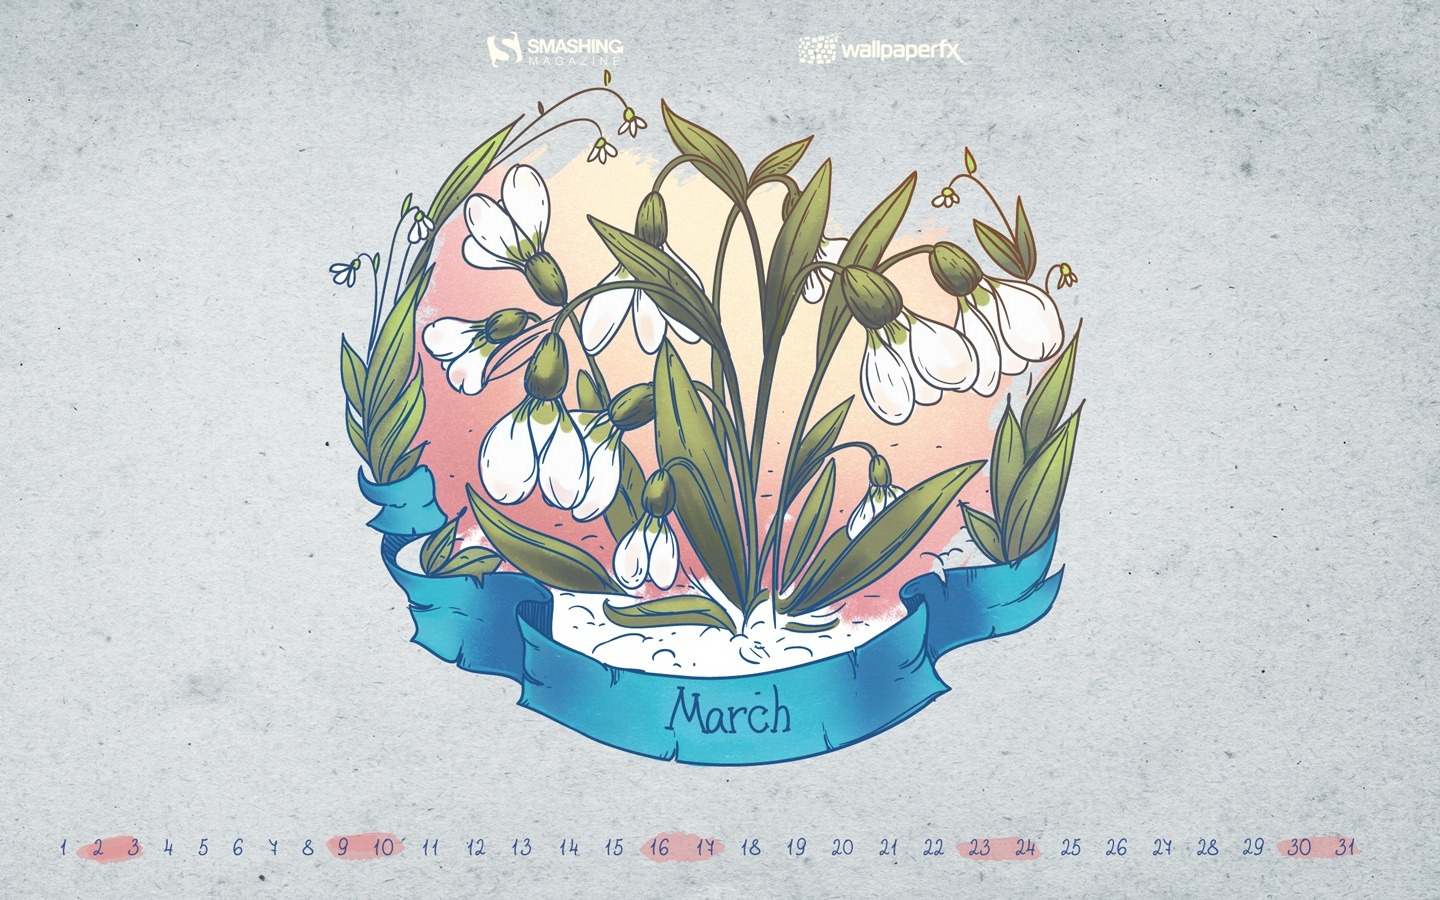 In January Calendar Wallpaper 32233